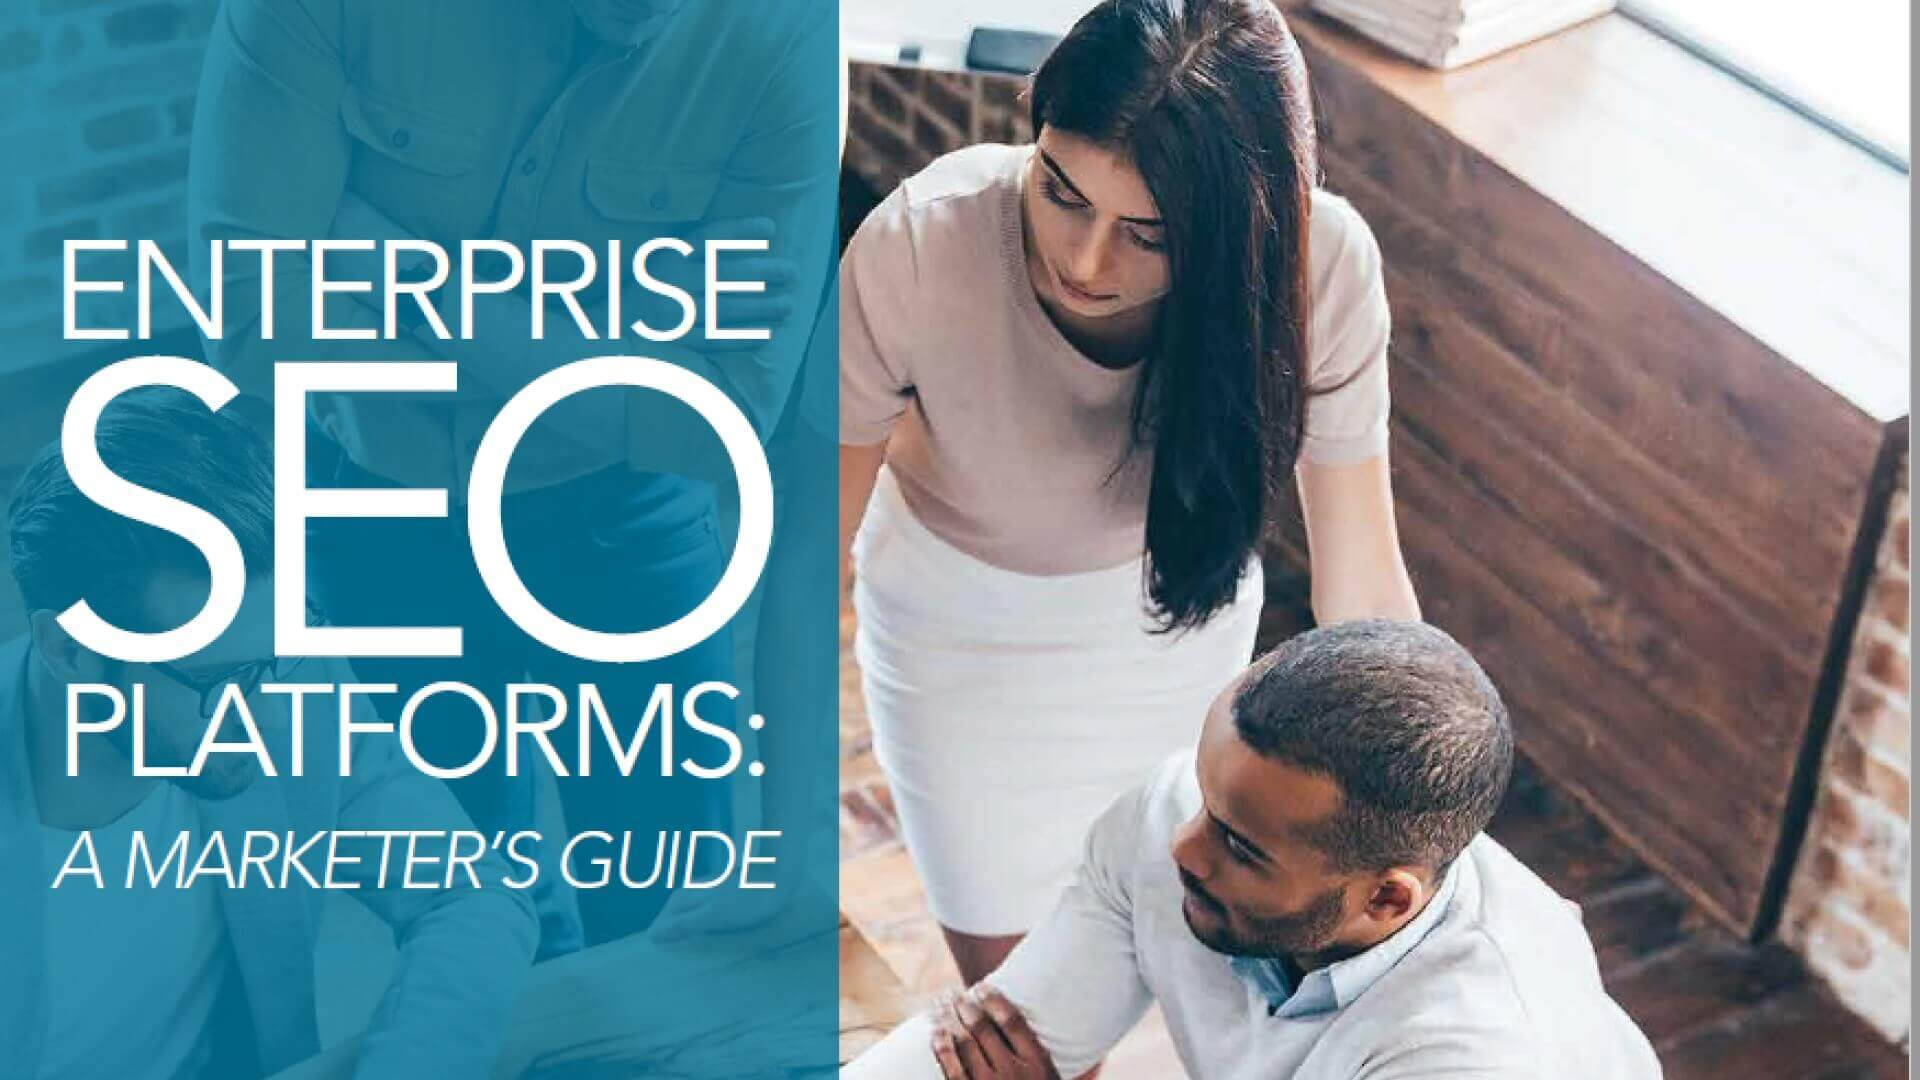 MarTech Today Research: A marketer's guide to enterprise SEO platforms